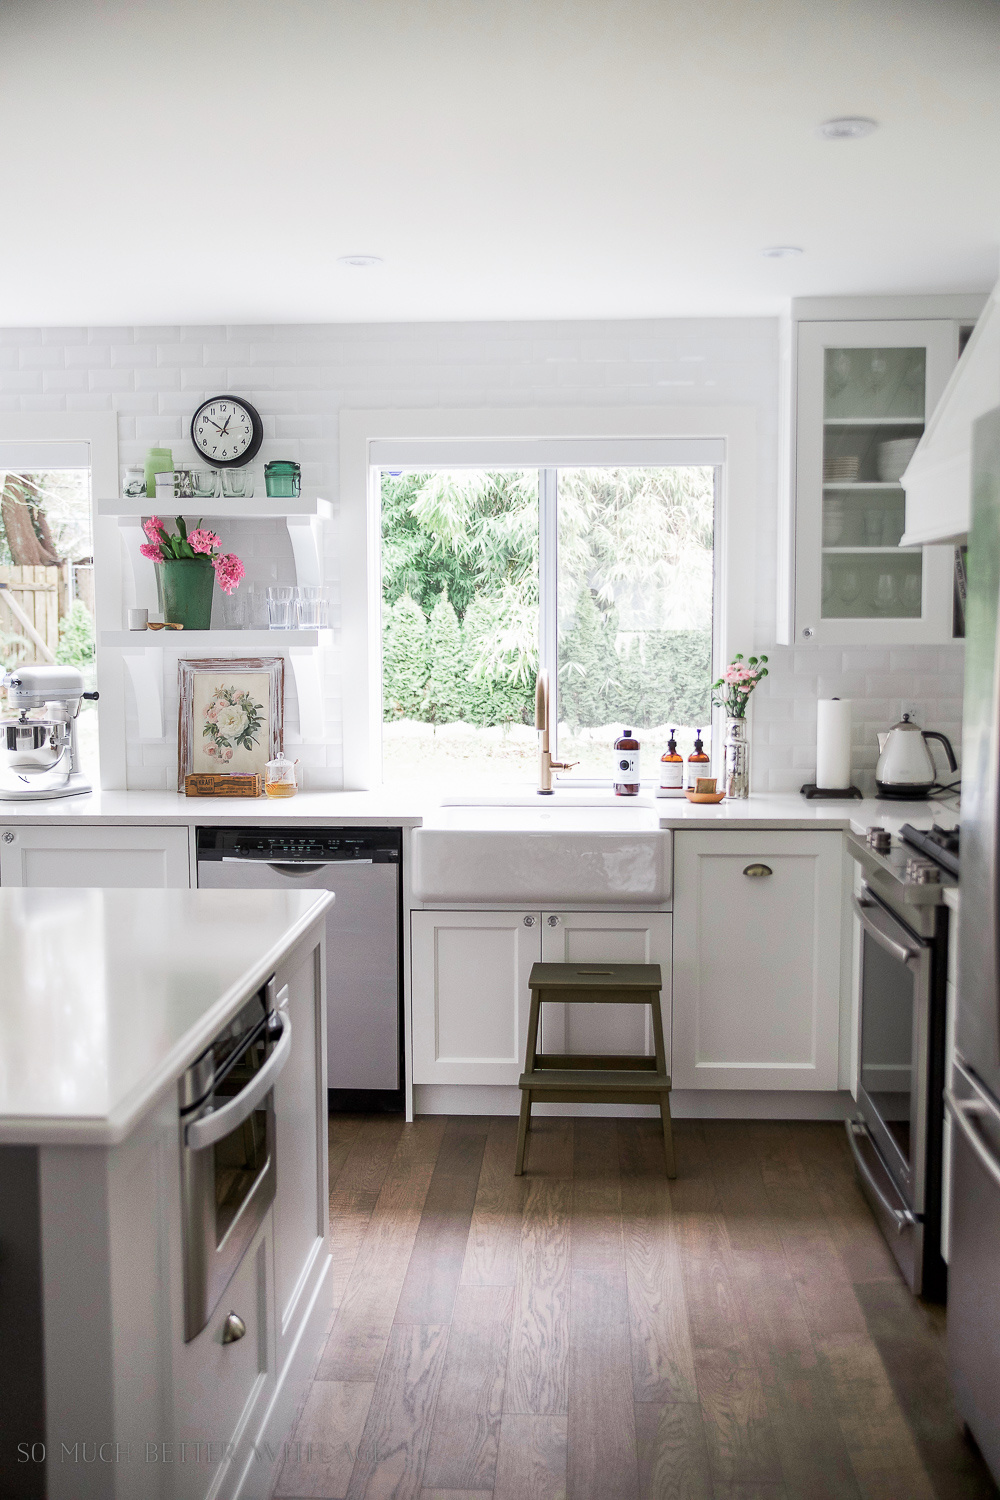 The Benefits Of Open Shelving In The Kitchen: Is It Still In, Or On Its Way Out?? - Tidbits